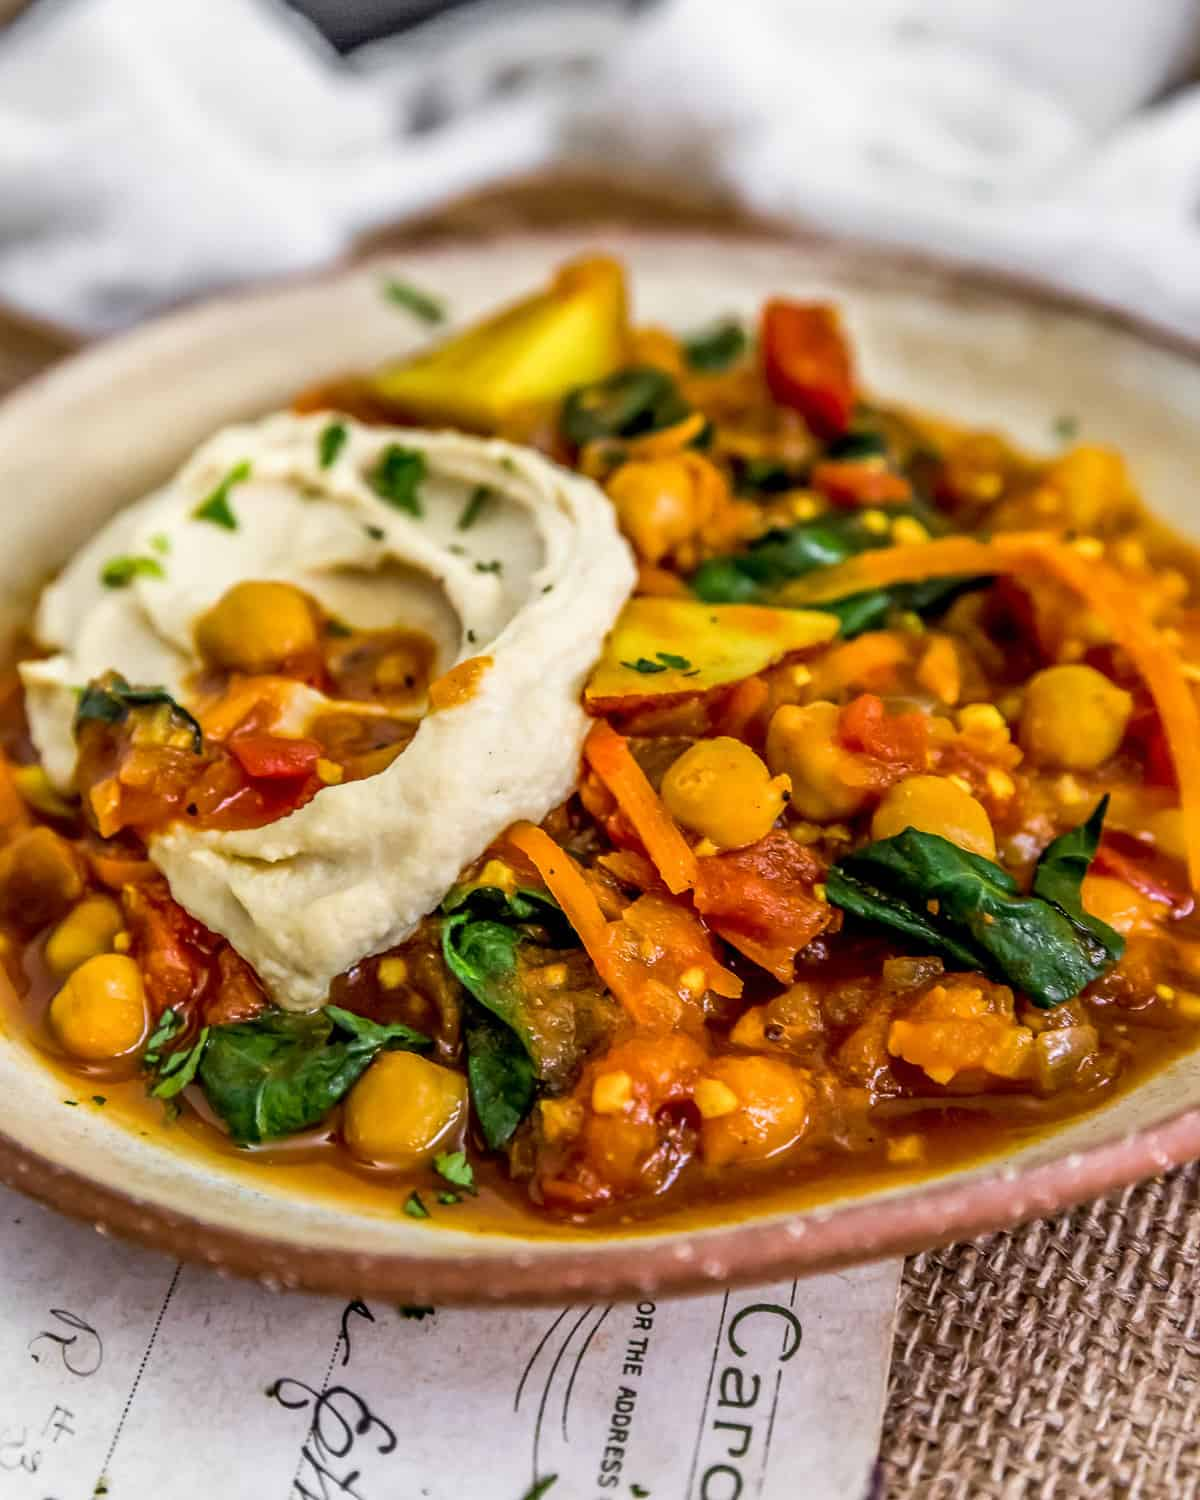 Plate of Berbere Potato Bean Stew with hummus